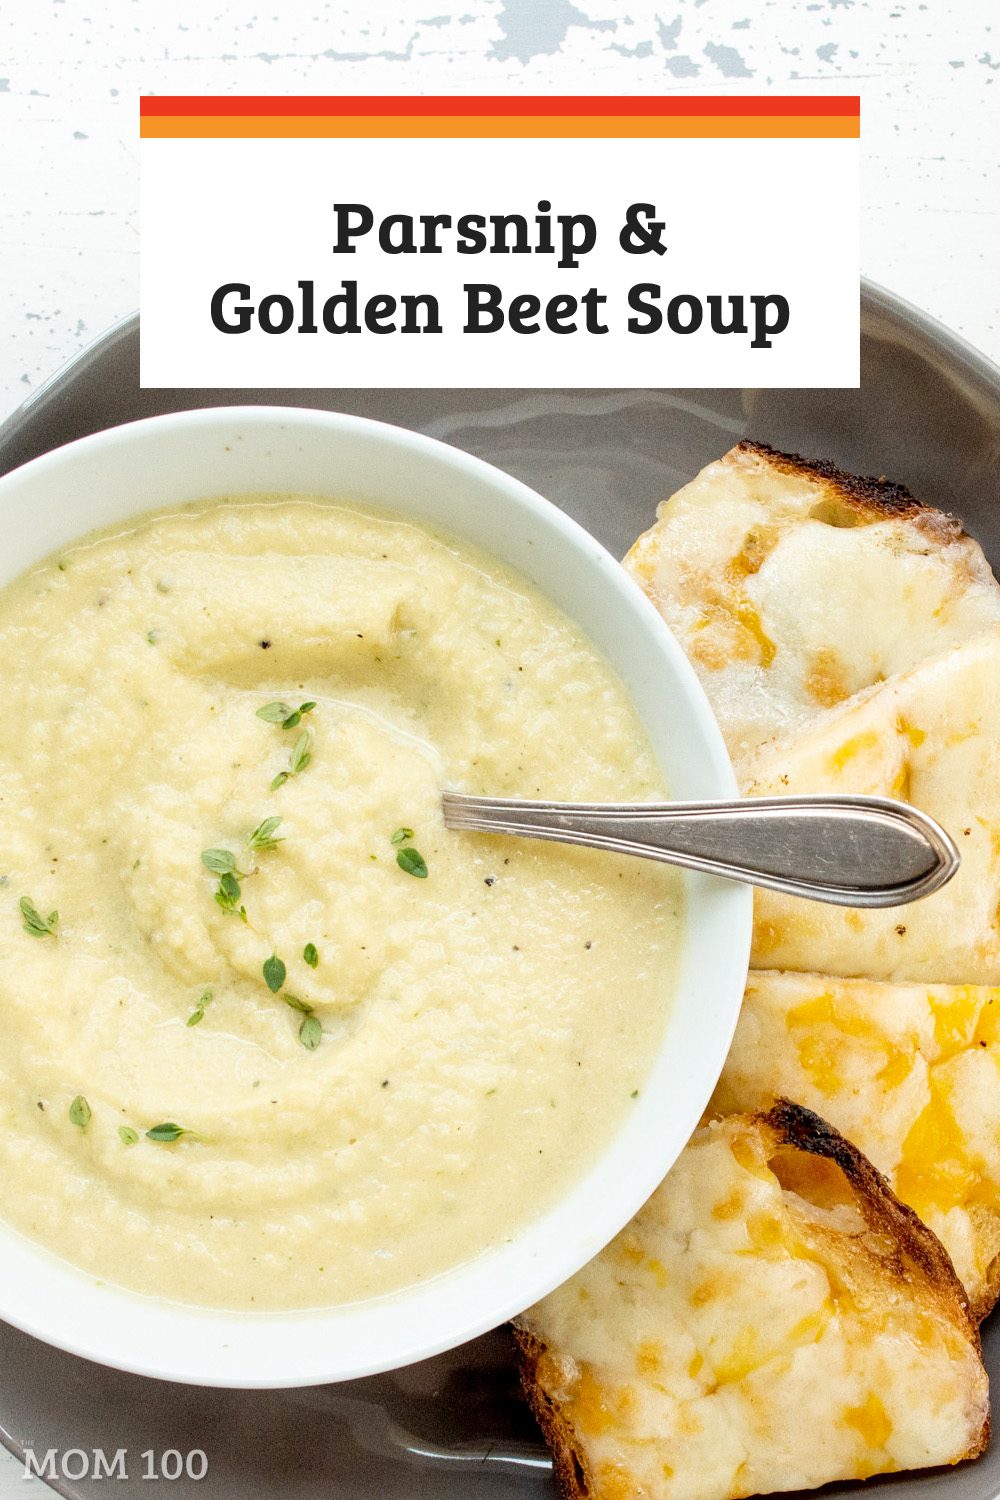 Parsnip and Golden Beet Soup / This beautiful fall soup soup has a rich golden color, and is filled with deep, sweet root vegetable flavor. #soup #vegetarian #gf